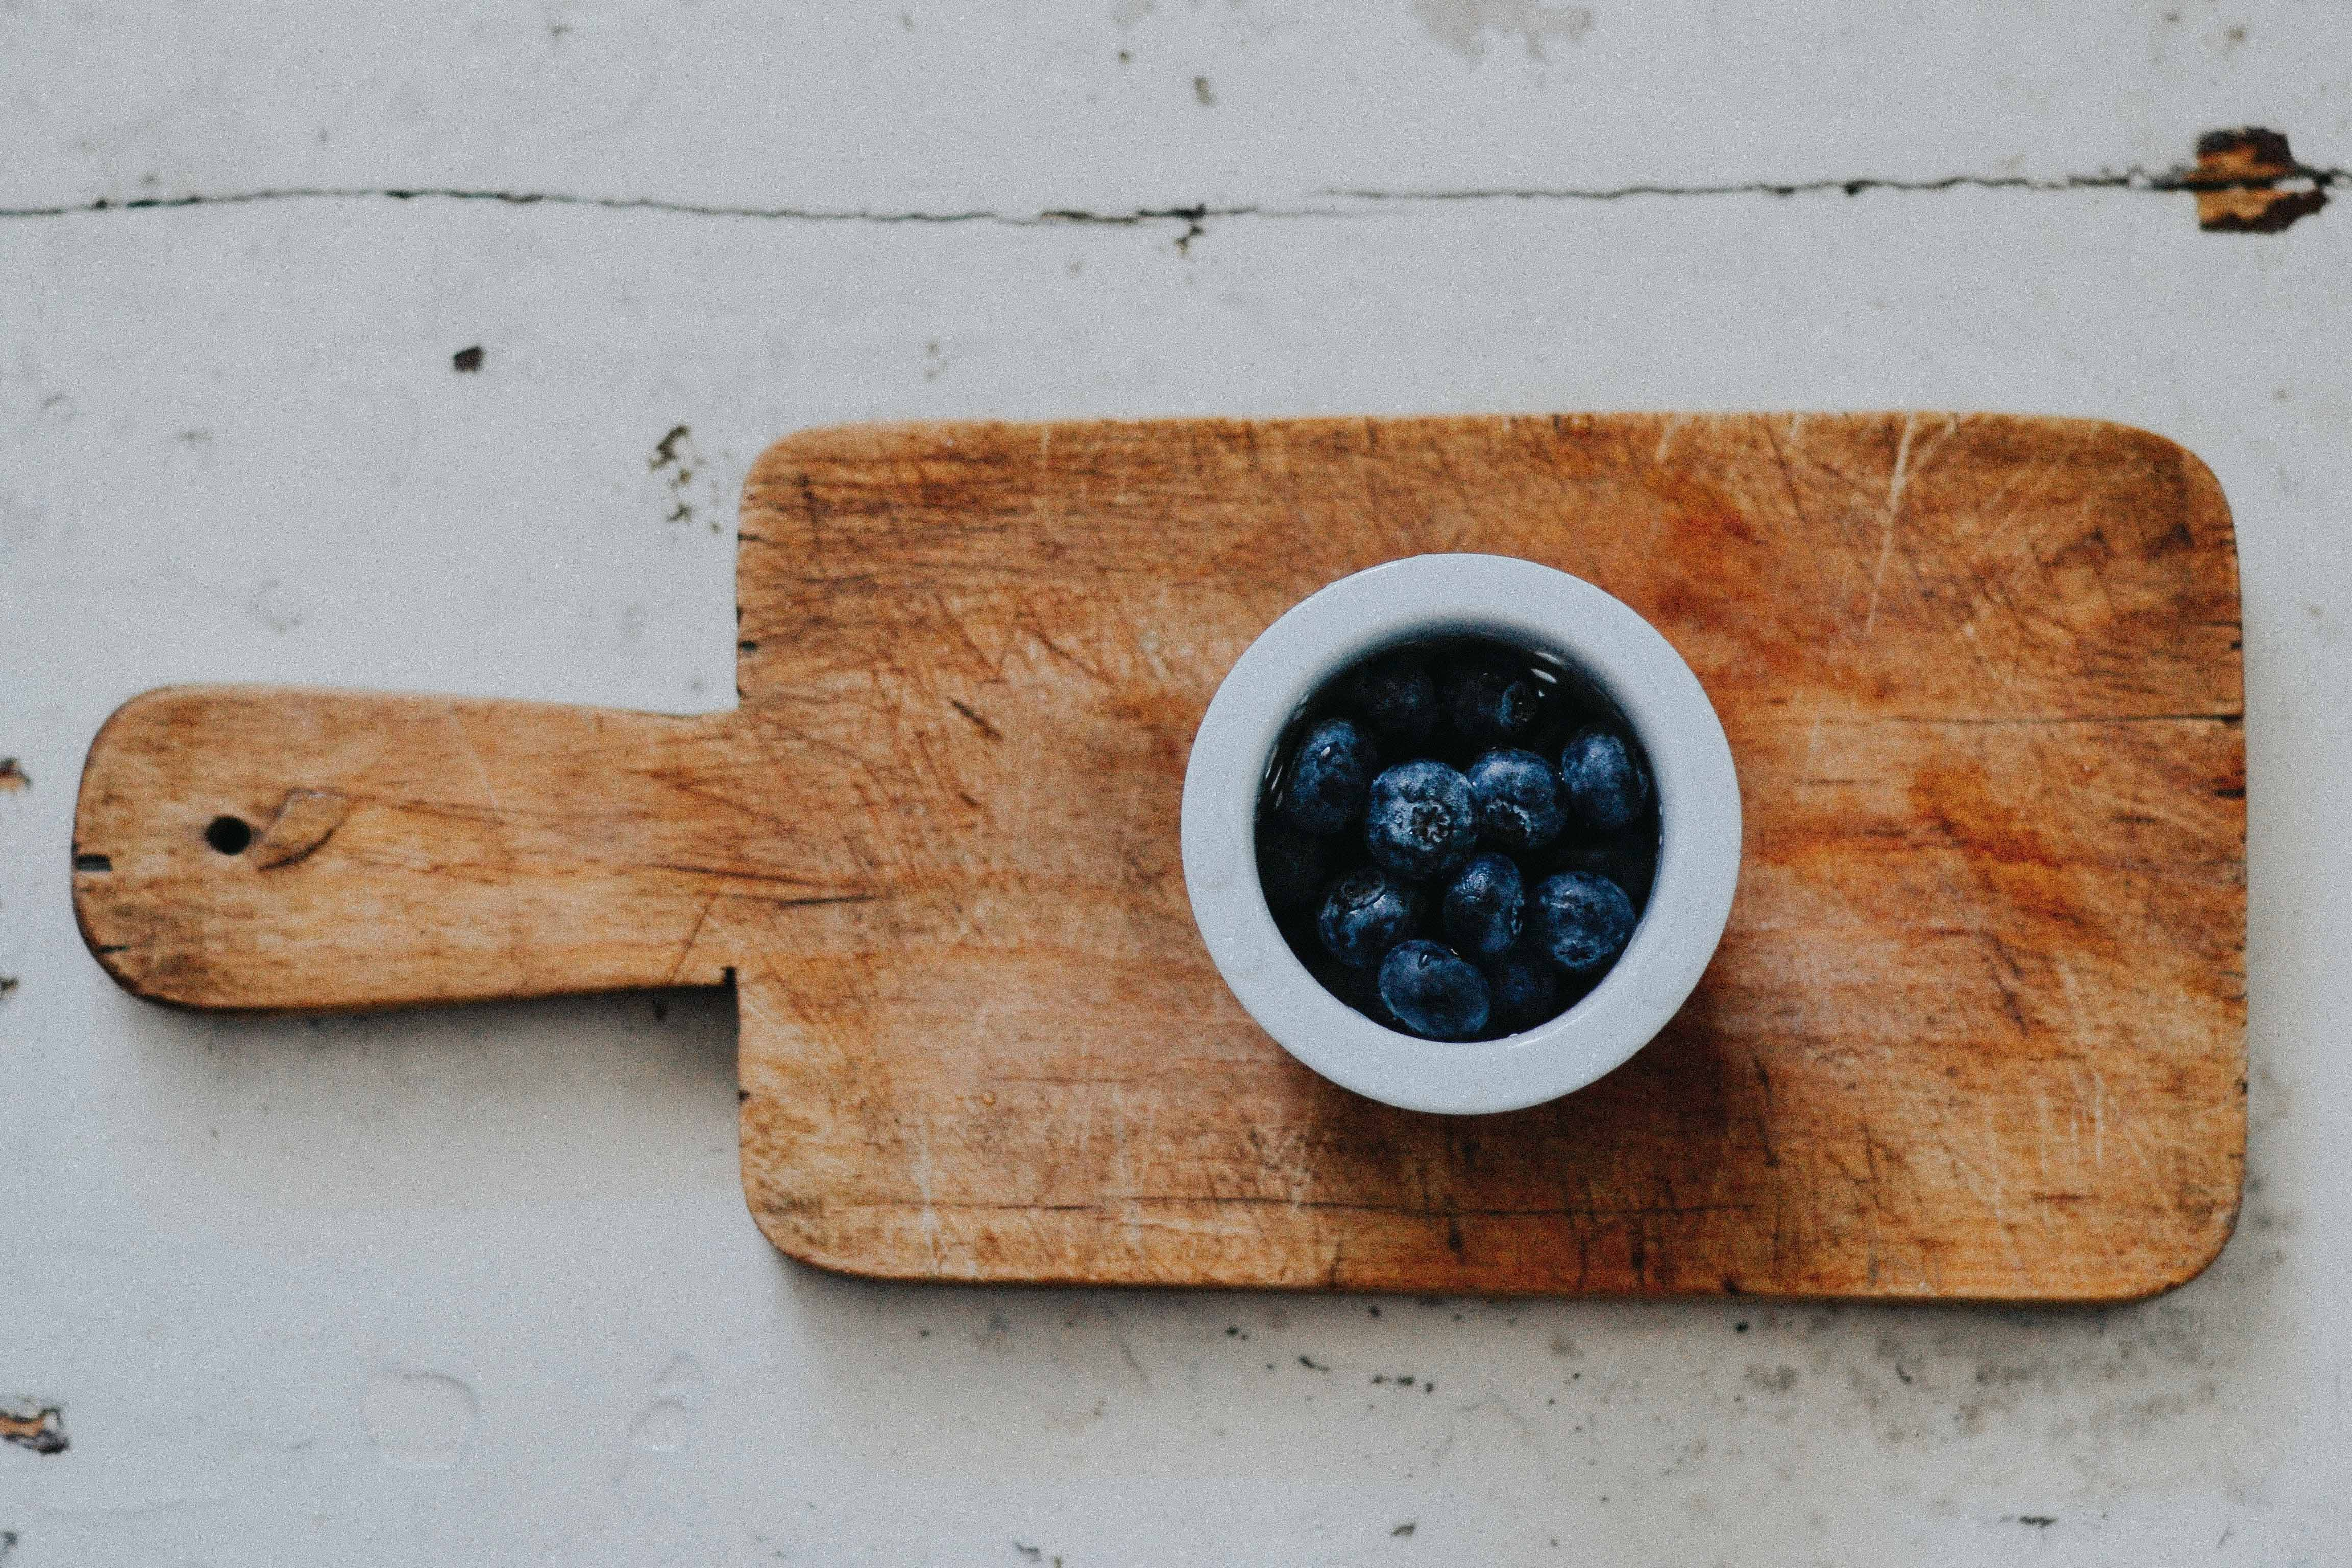 White cup of blueberries on top of cutting board on top of wooden surface